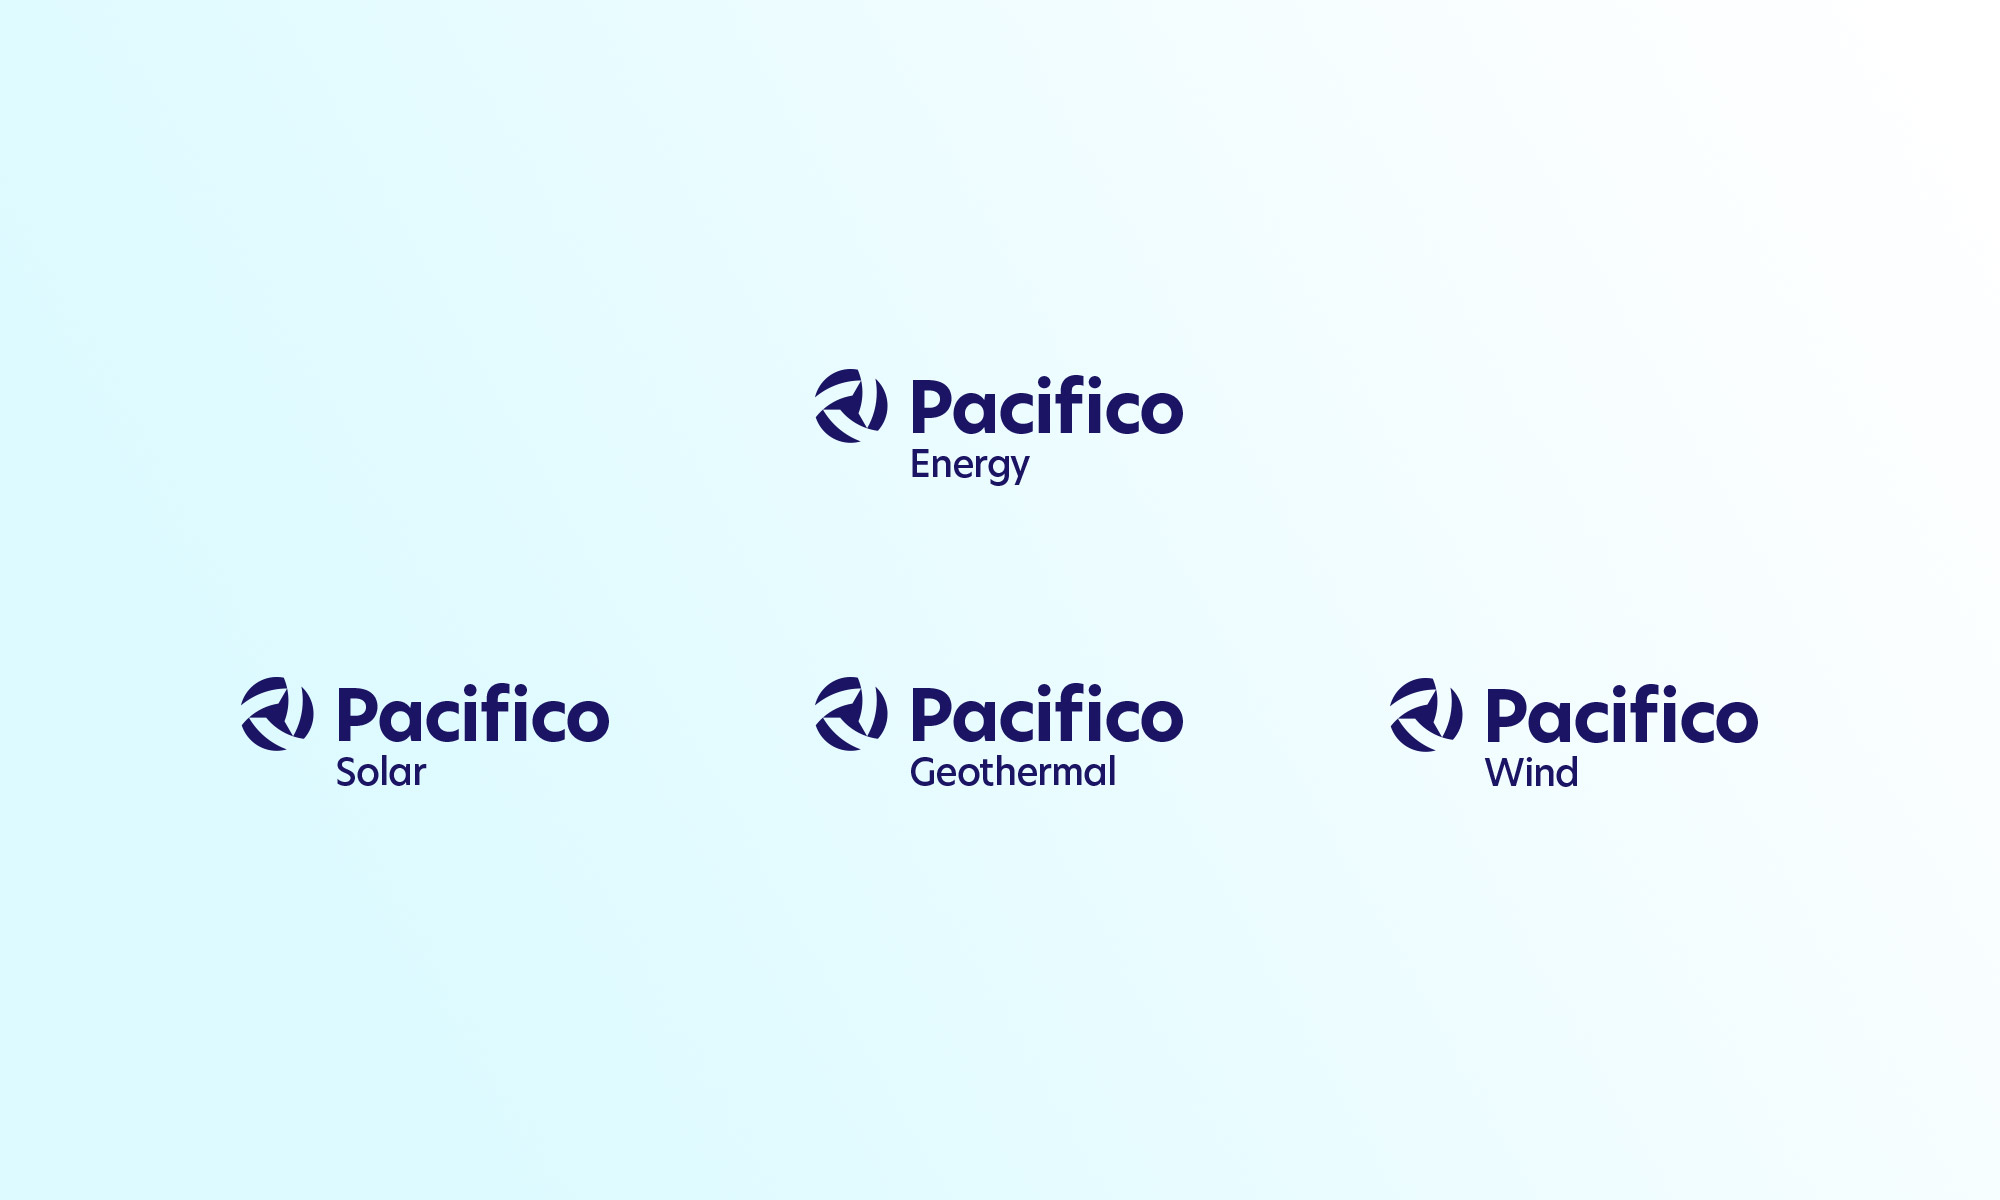 Pacifico Energy sub brands